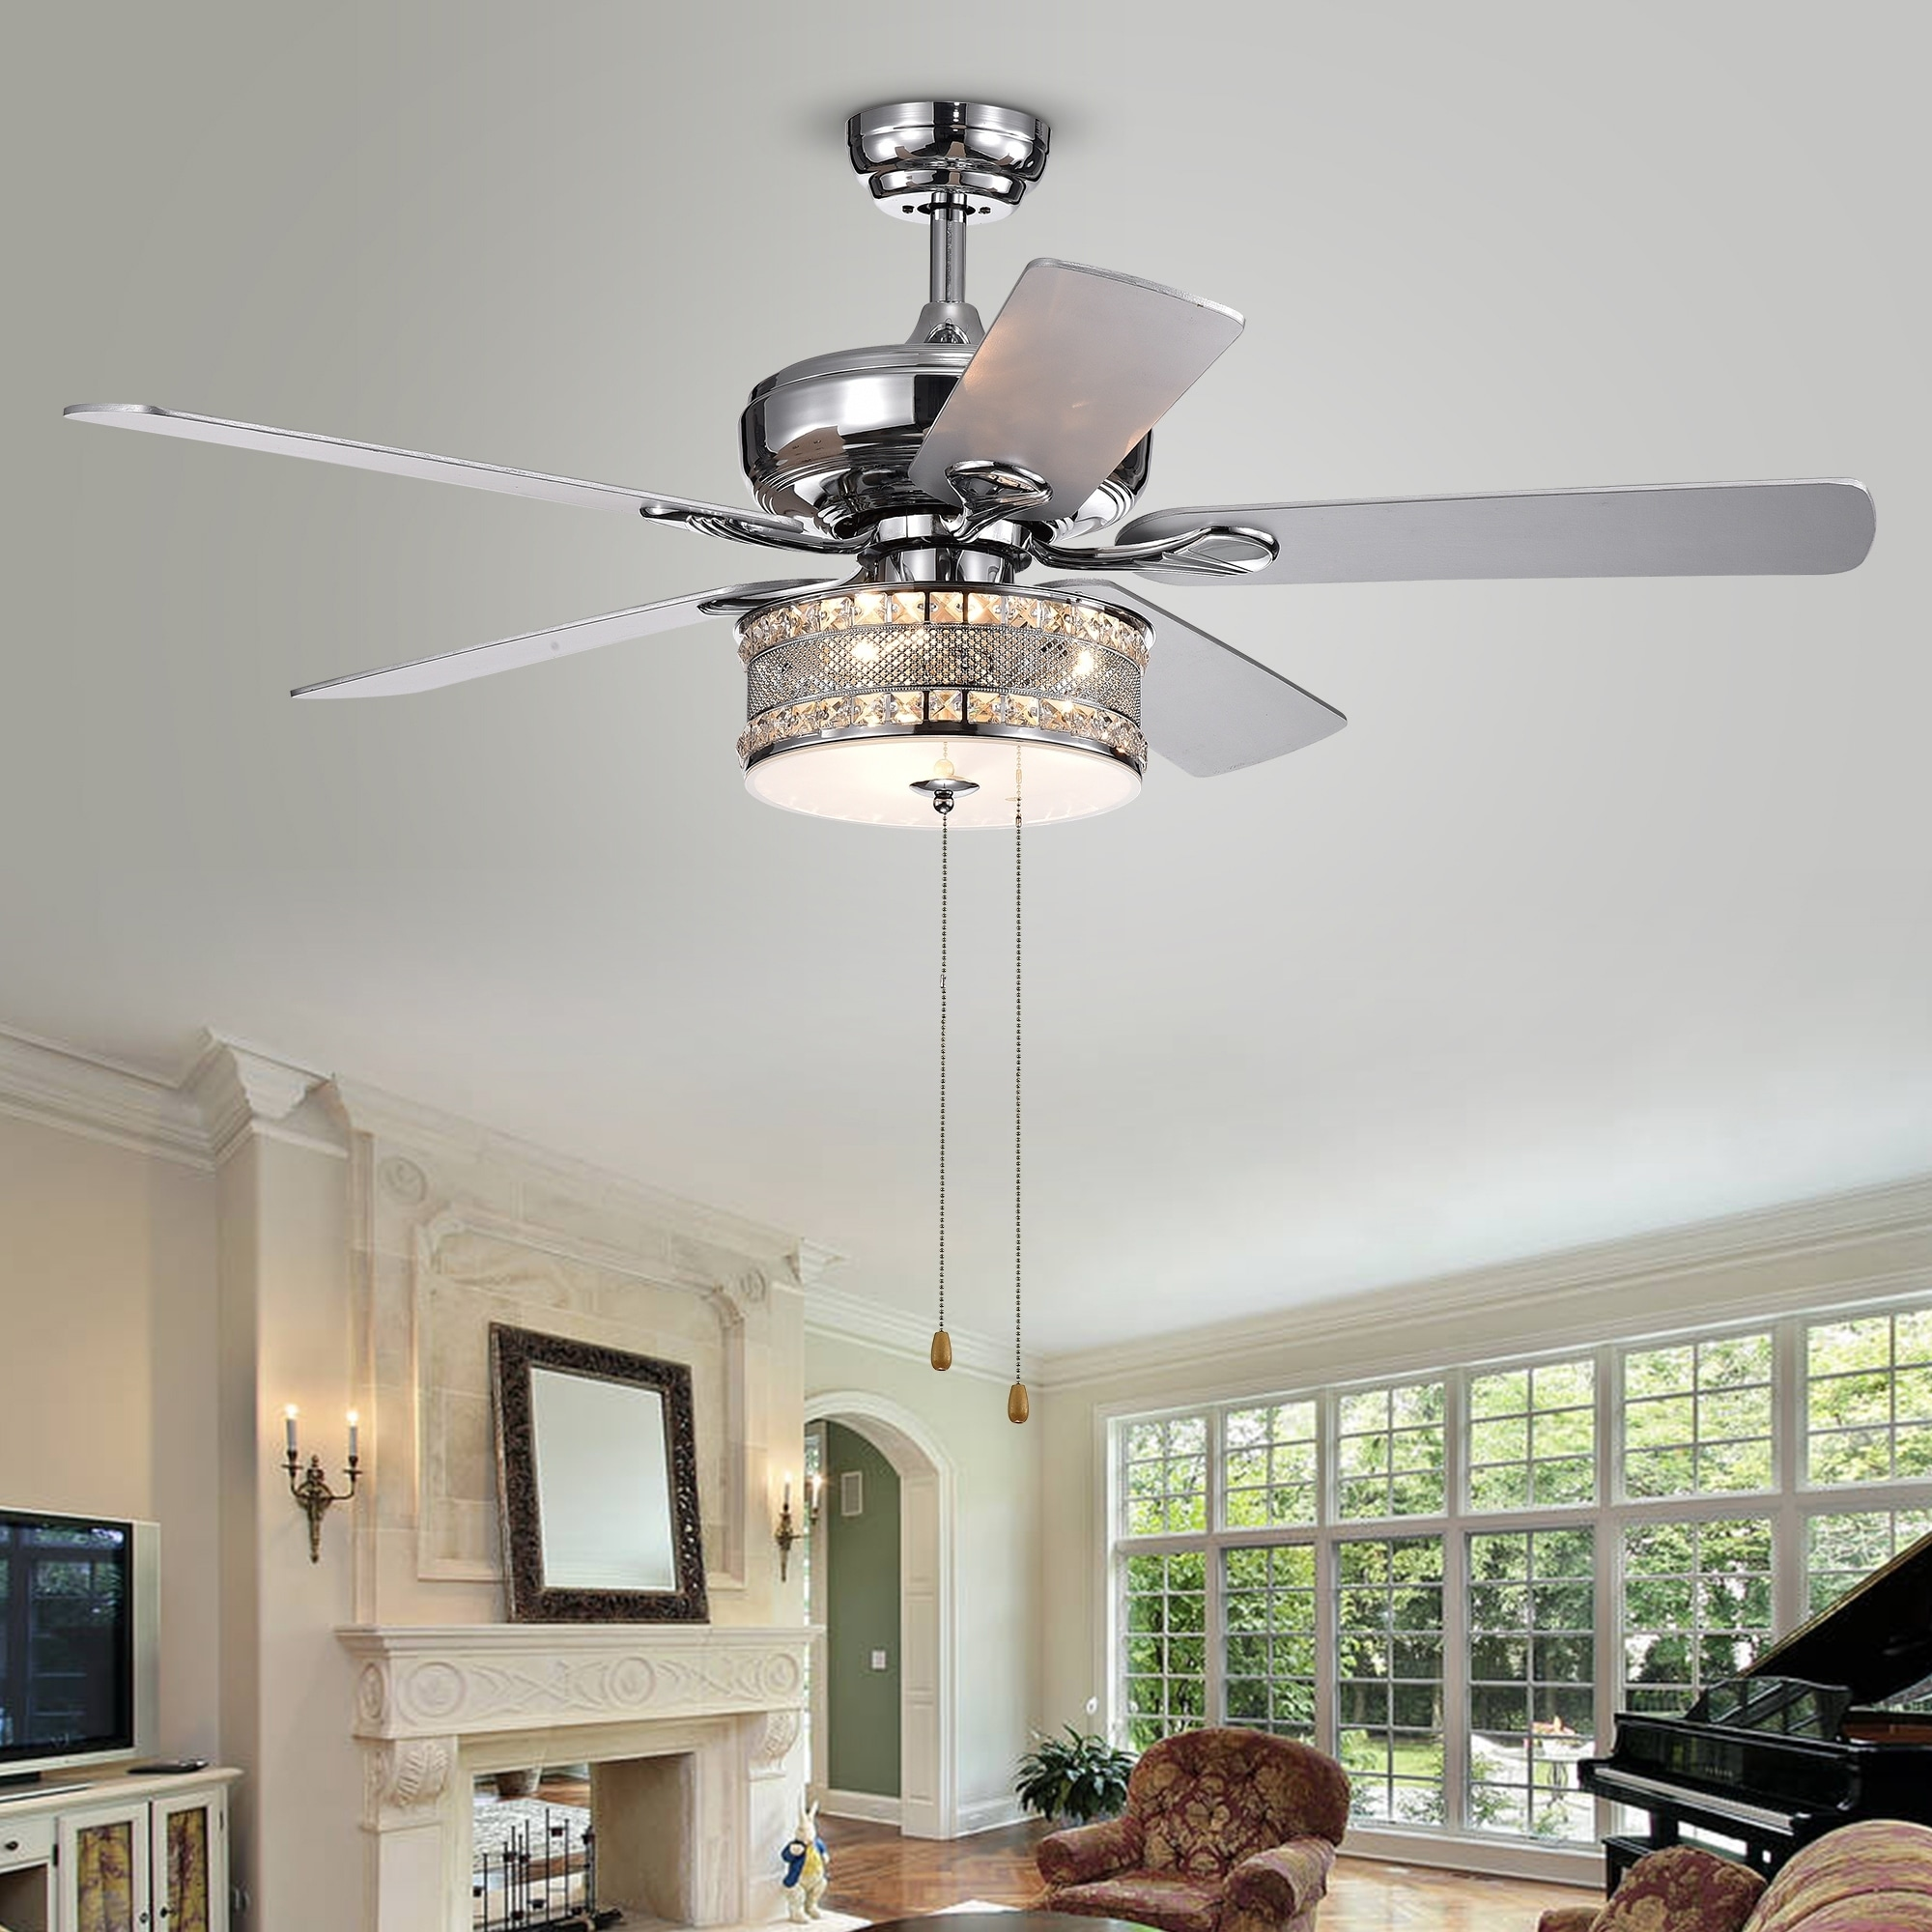 Shop davrin 5 blade 52 inch chrome lighted ceiling fans with 3 light shop davrin 5 blade 52 inch chrome lighted ceiling fans with 3 light crystal drum lamp optional remote on sale free shipping today overstock aloadofball Images